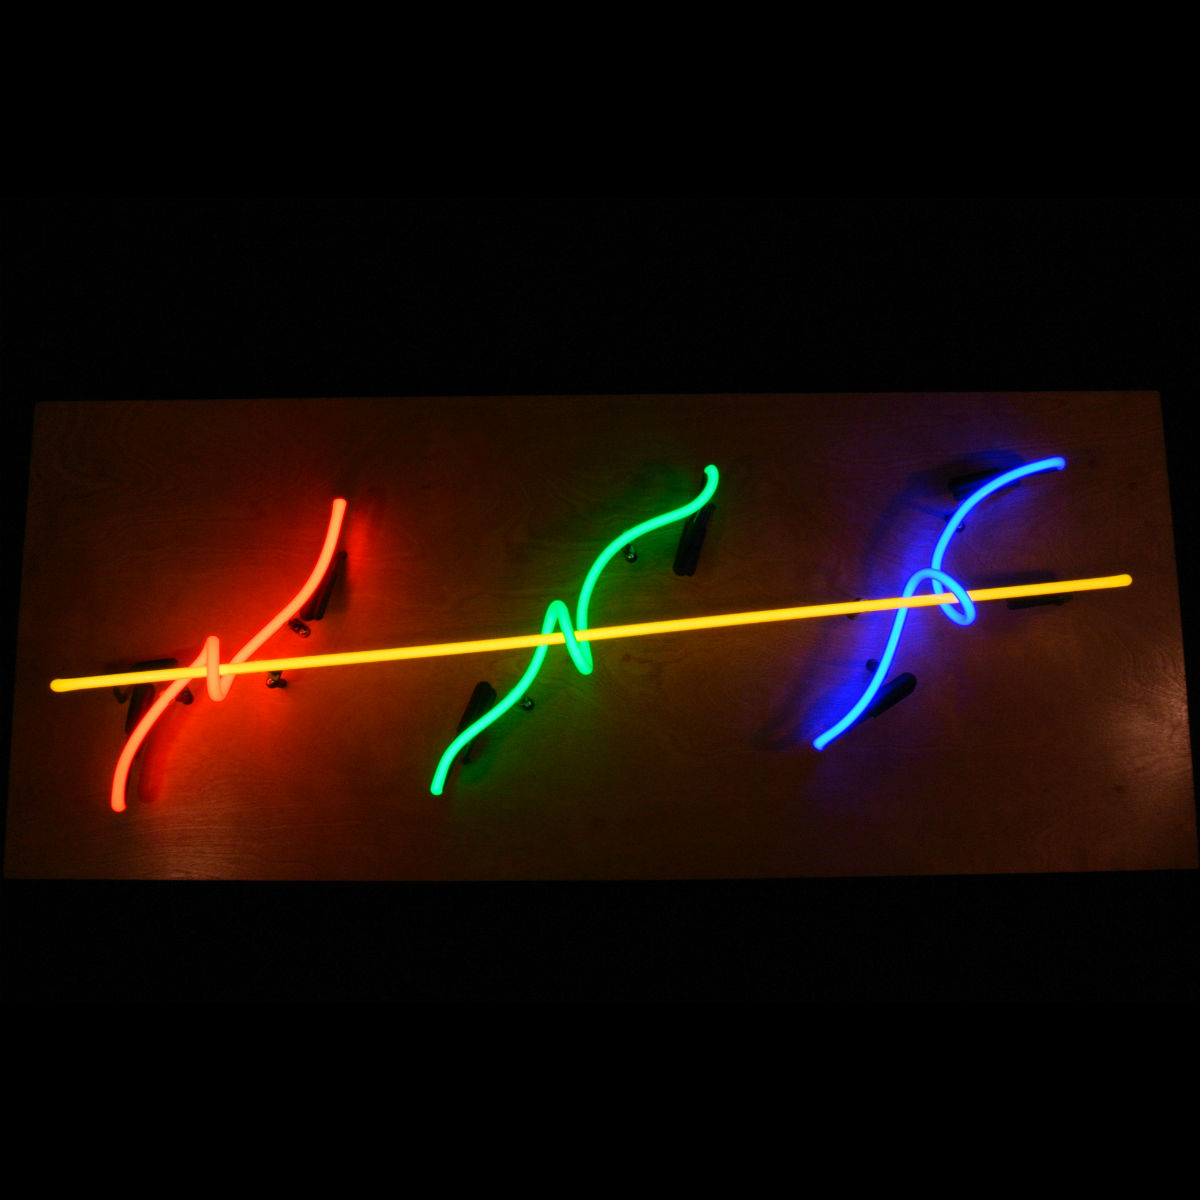 Brilliant Custom Neon Light Fixtures by John Barton - Famous USA Neon Light Sculptor - BartonNeonMagic.com